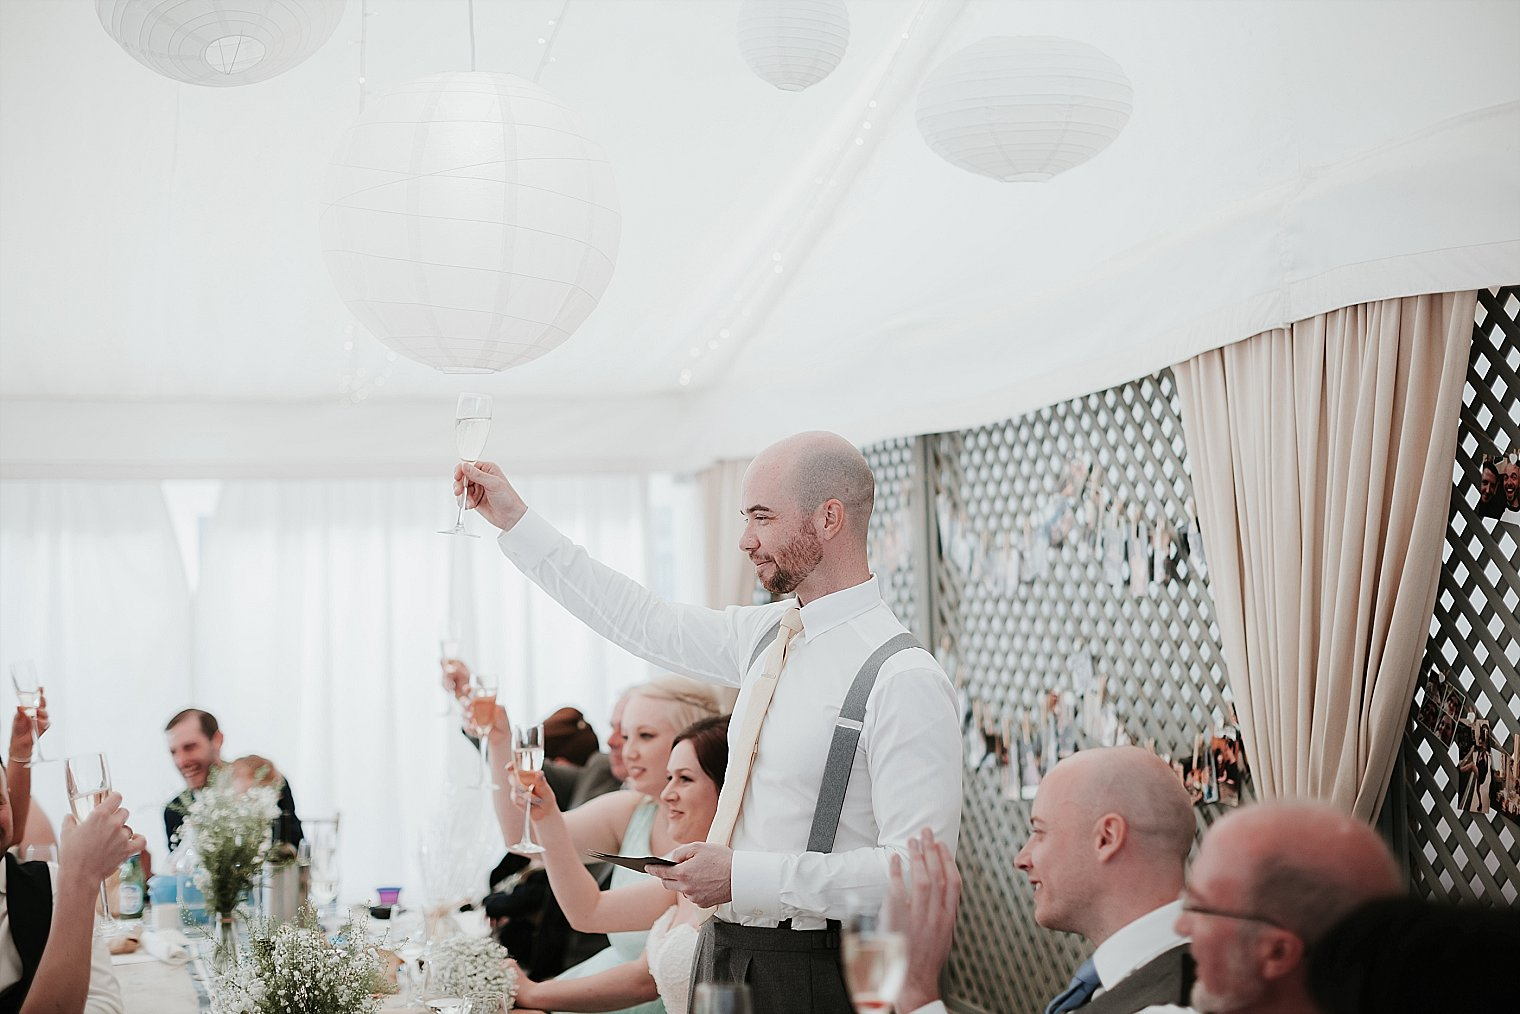 Groom toasting bridesmaids